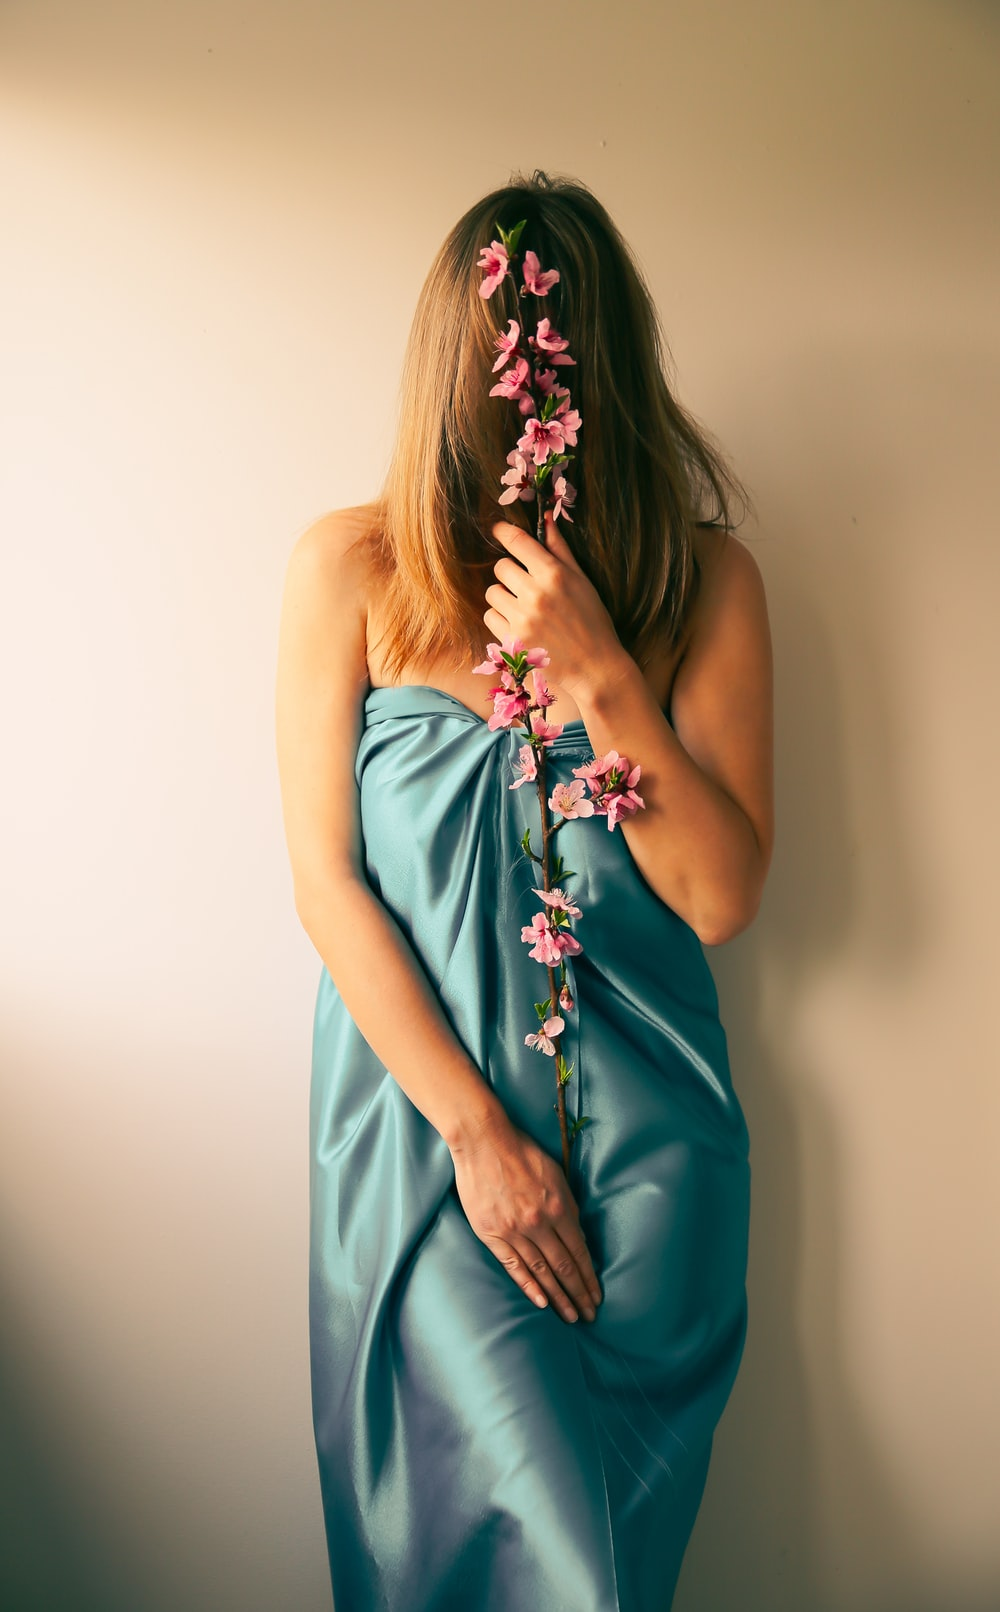 woman in blue sleeveless dress holding bouquet of flowers